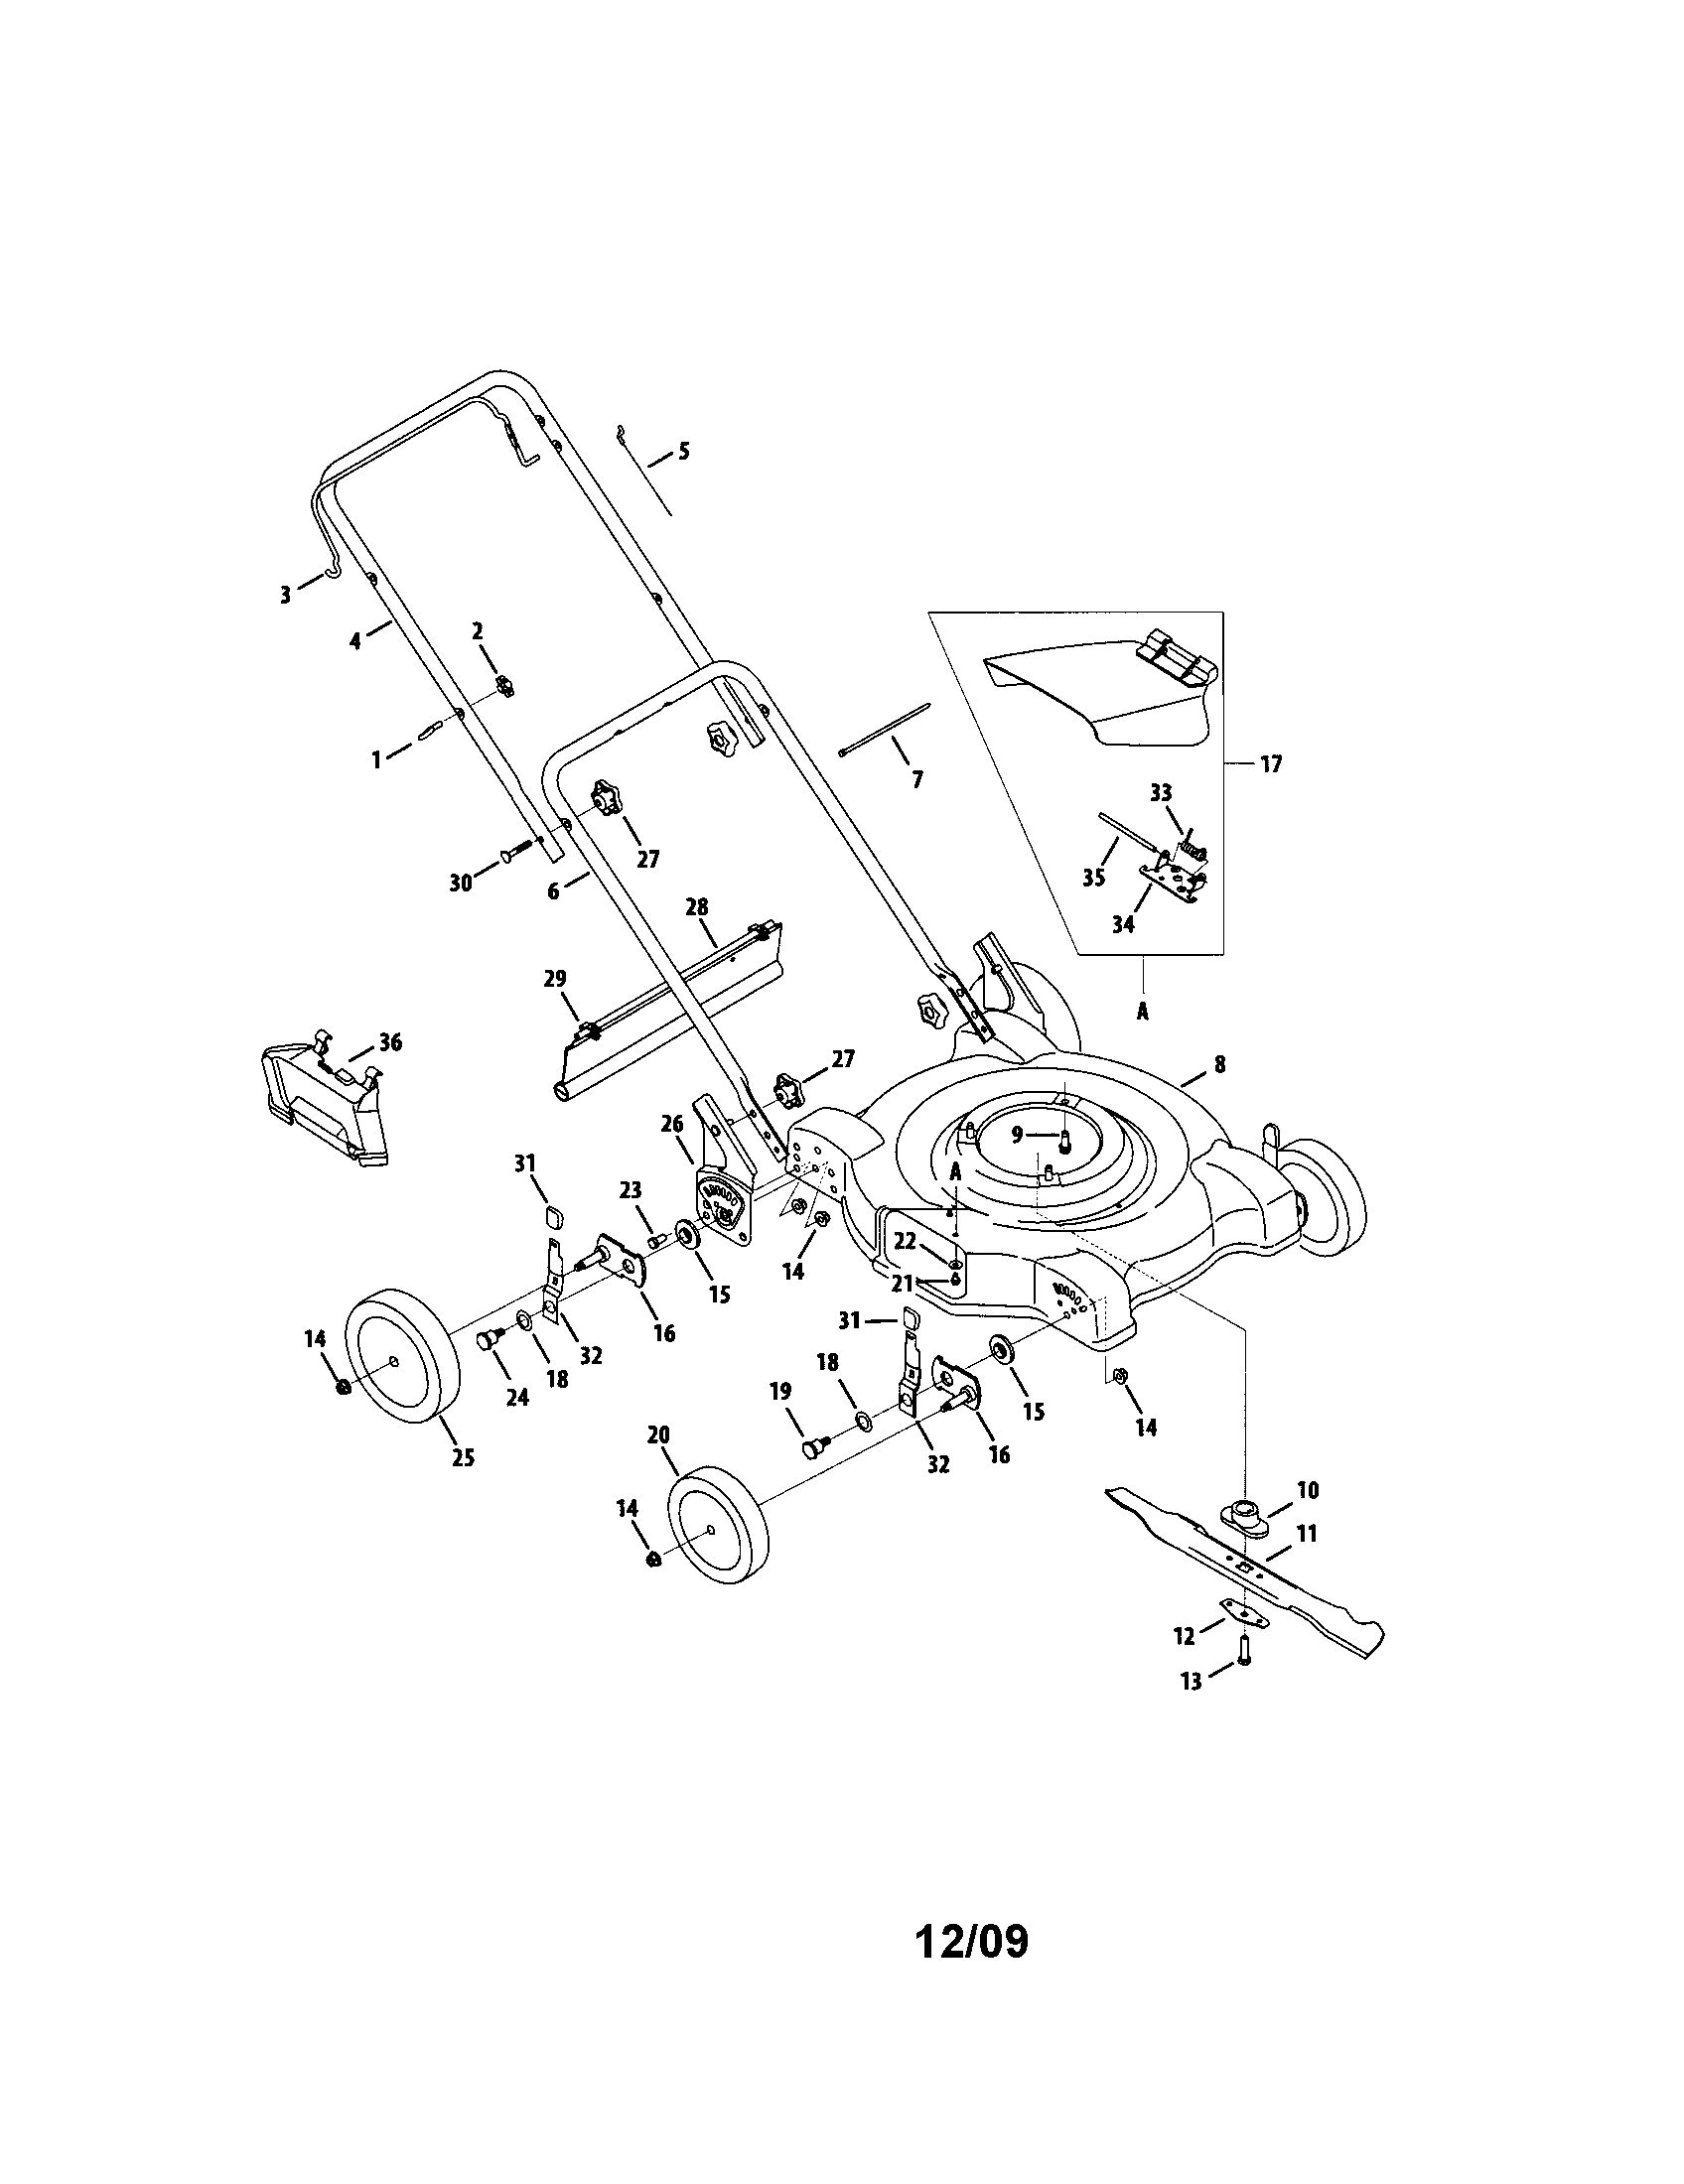 Sears Craftsman Lawn Tractor Troubleshooting Help Please